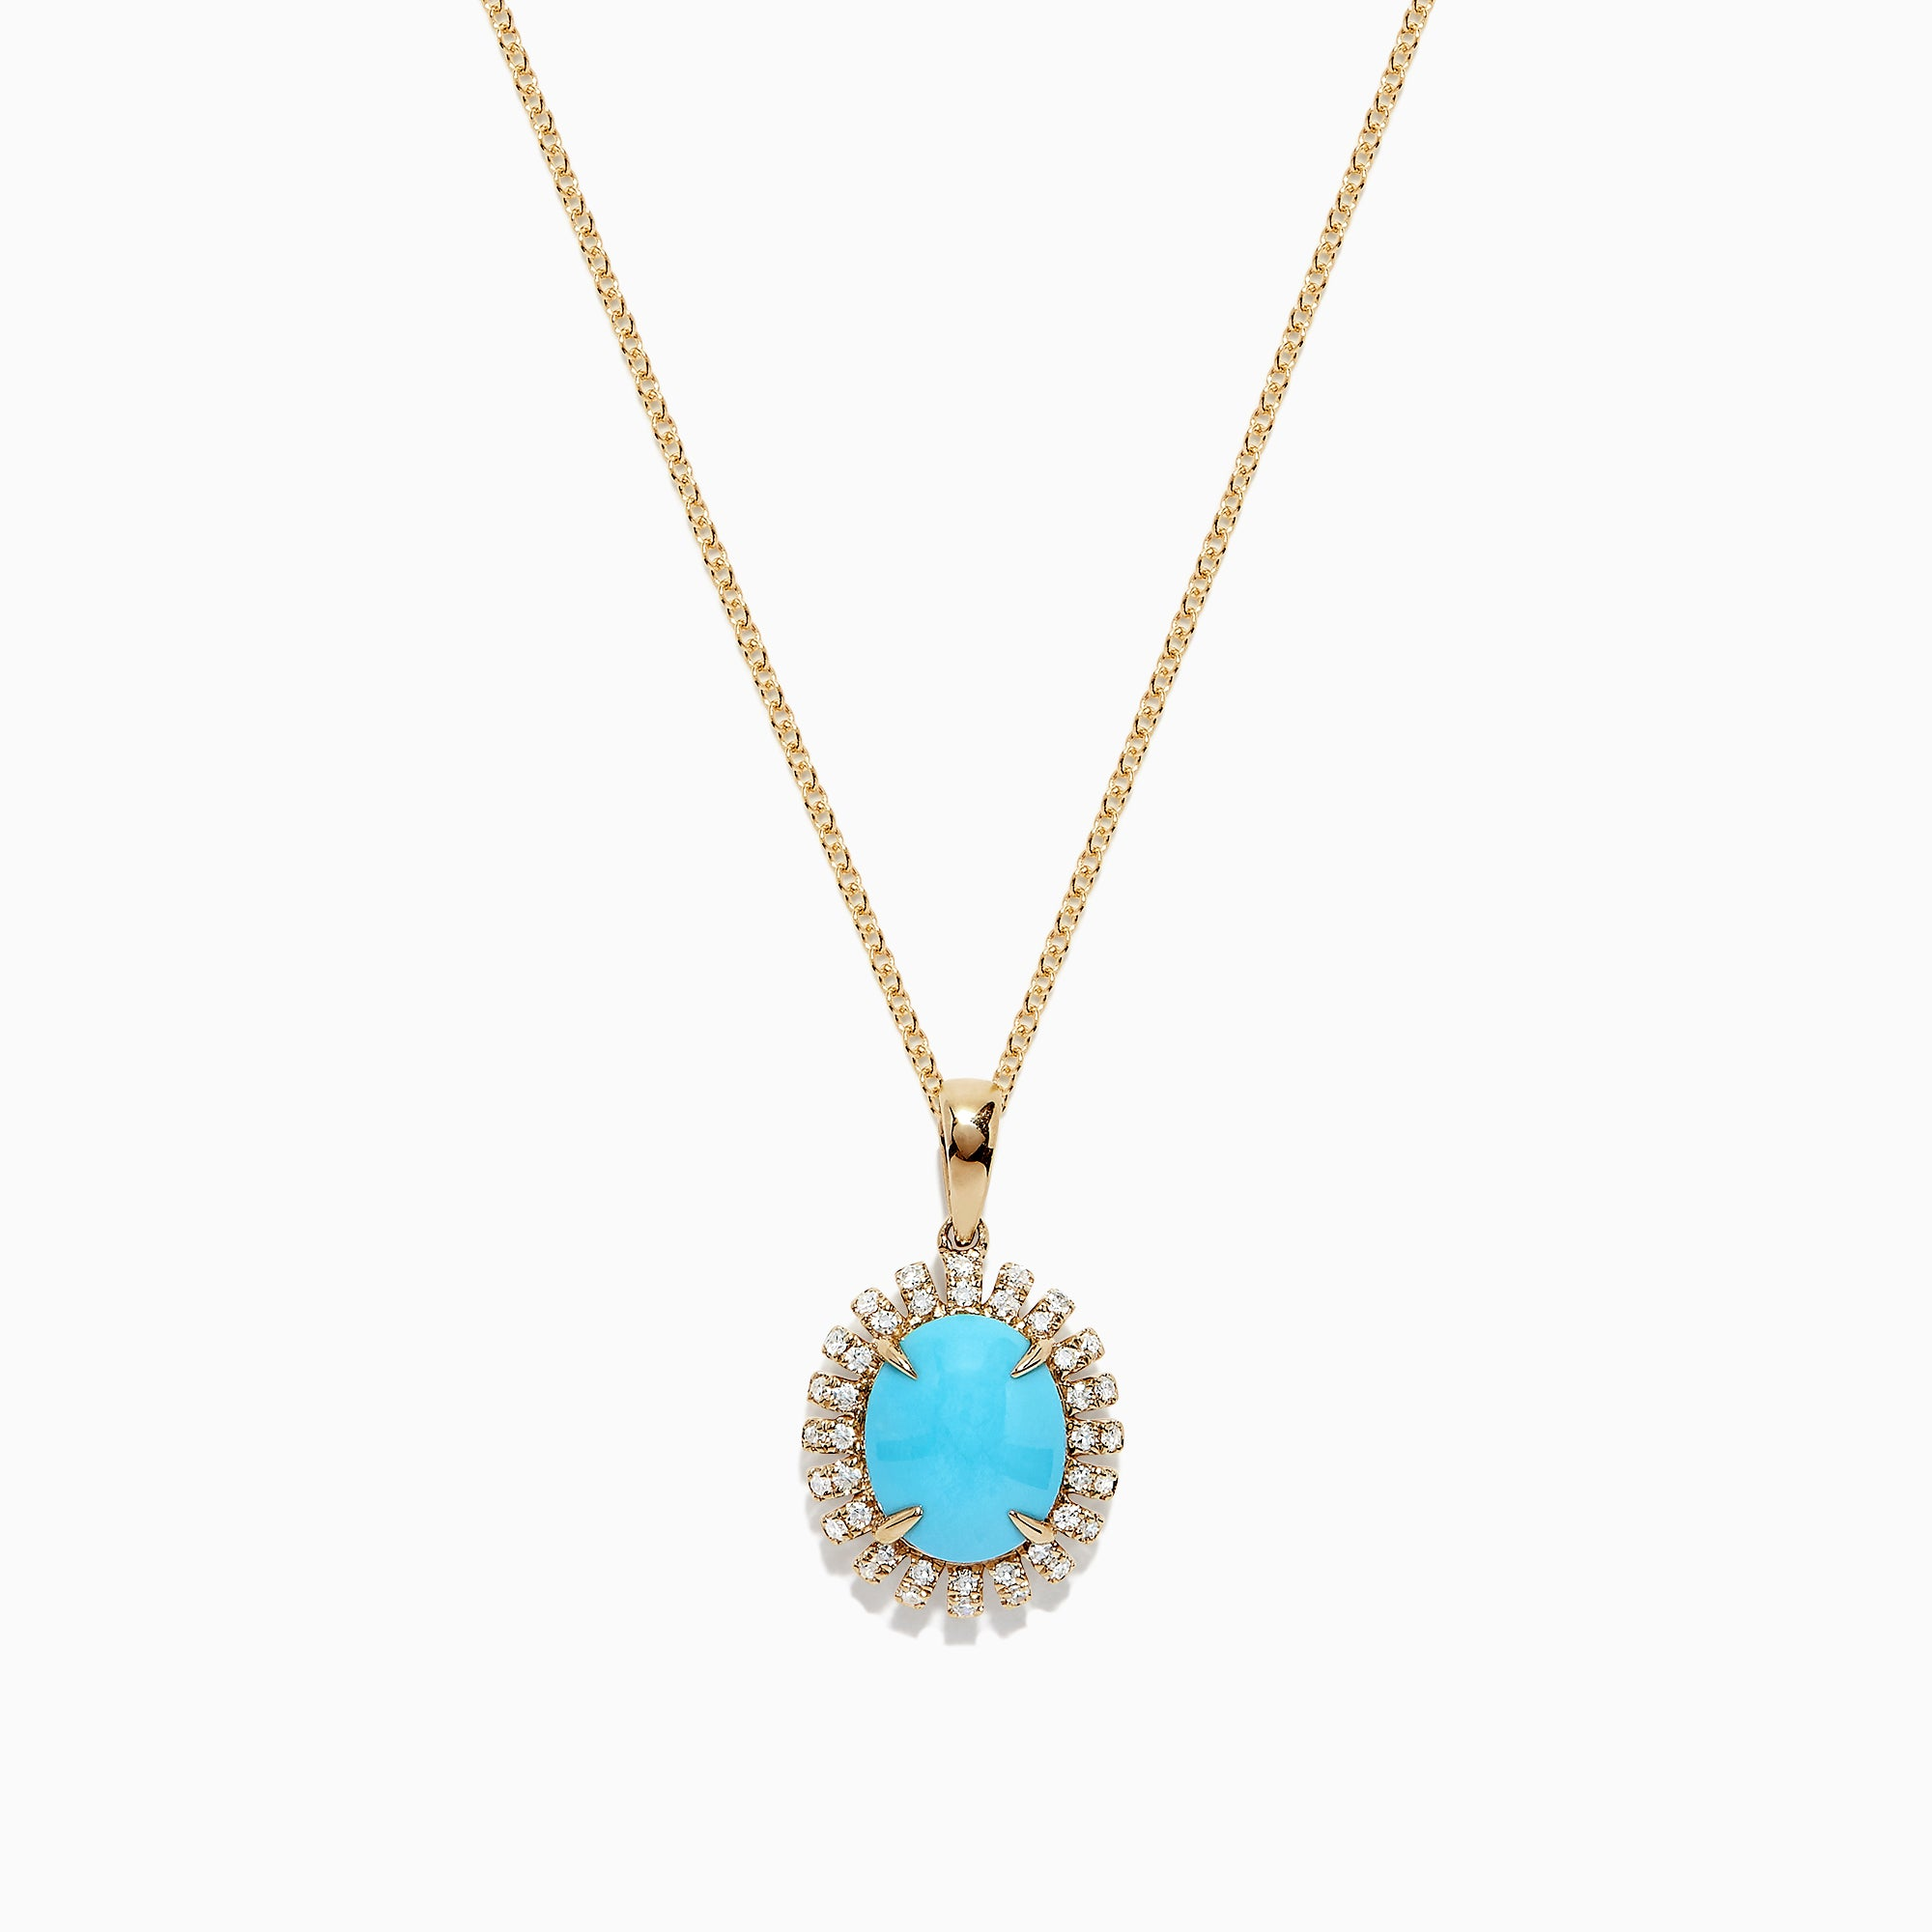 Effy 14K Yellow Gold Turquoise and Diamond Pendant, 2.54 TCW